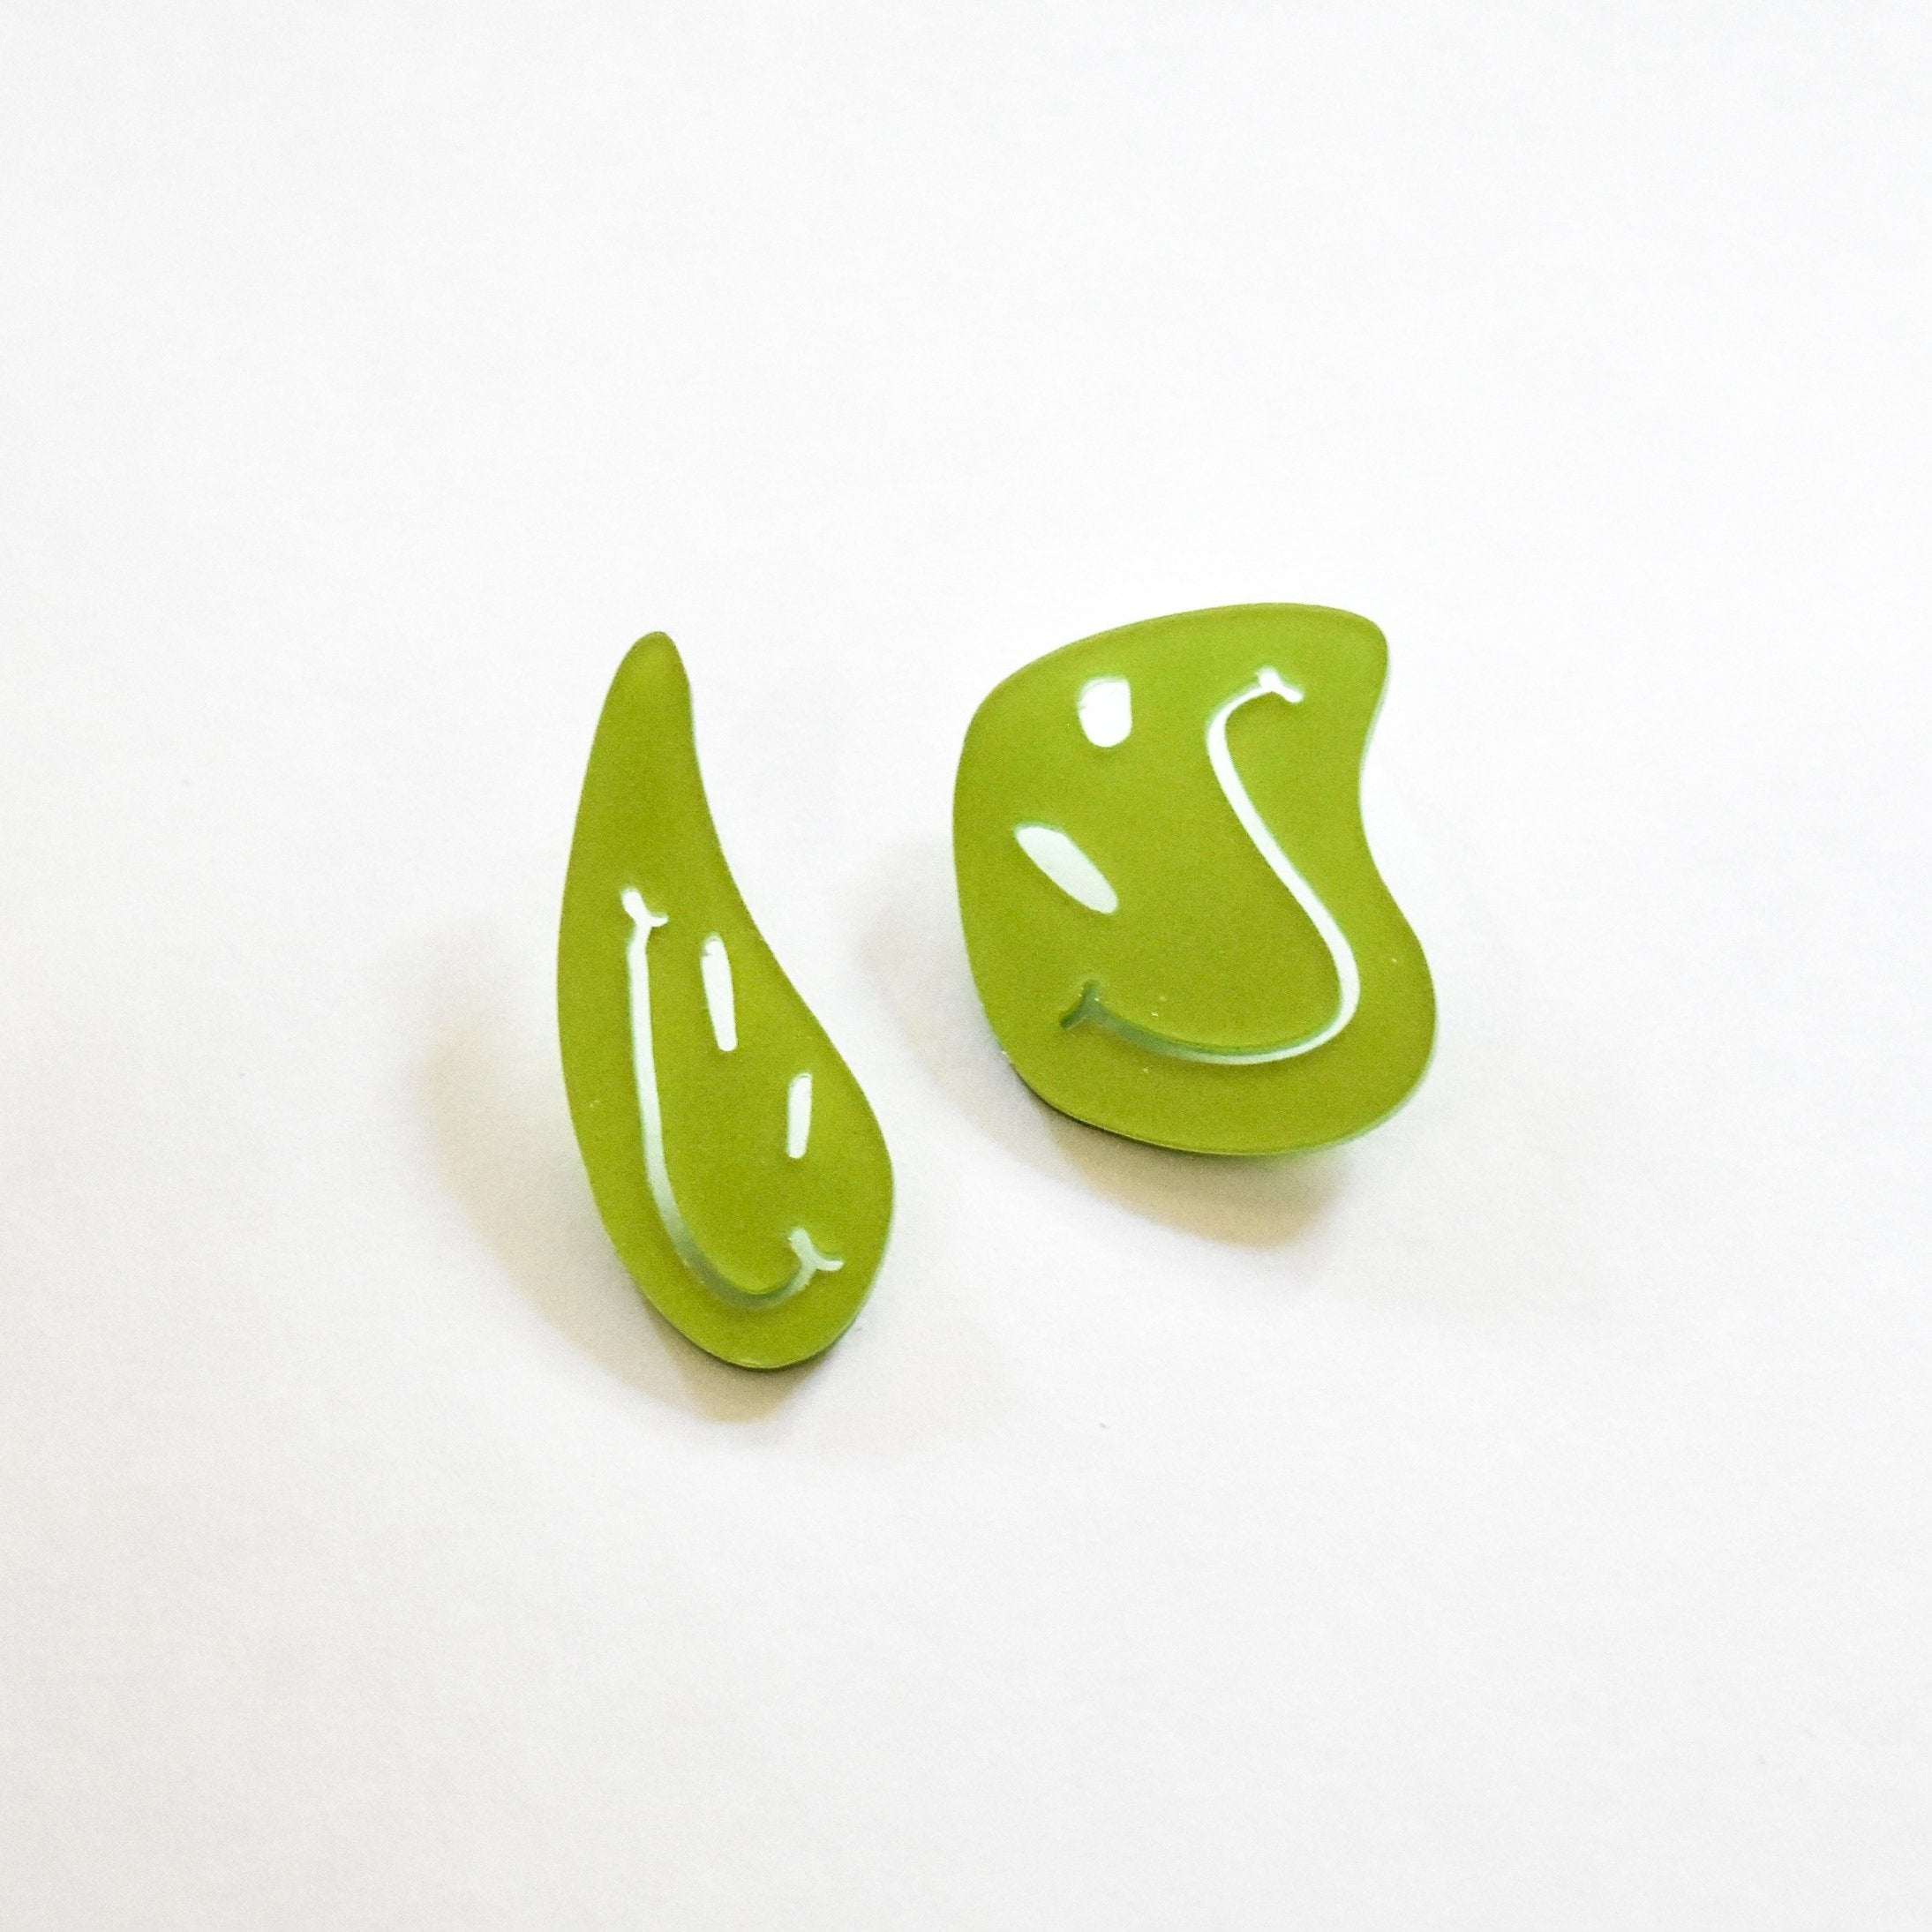 Ecoresin Earrings - Smiley